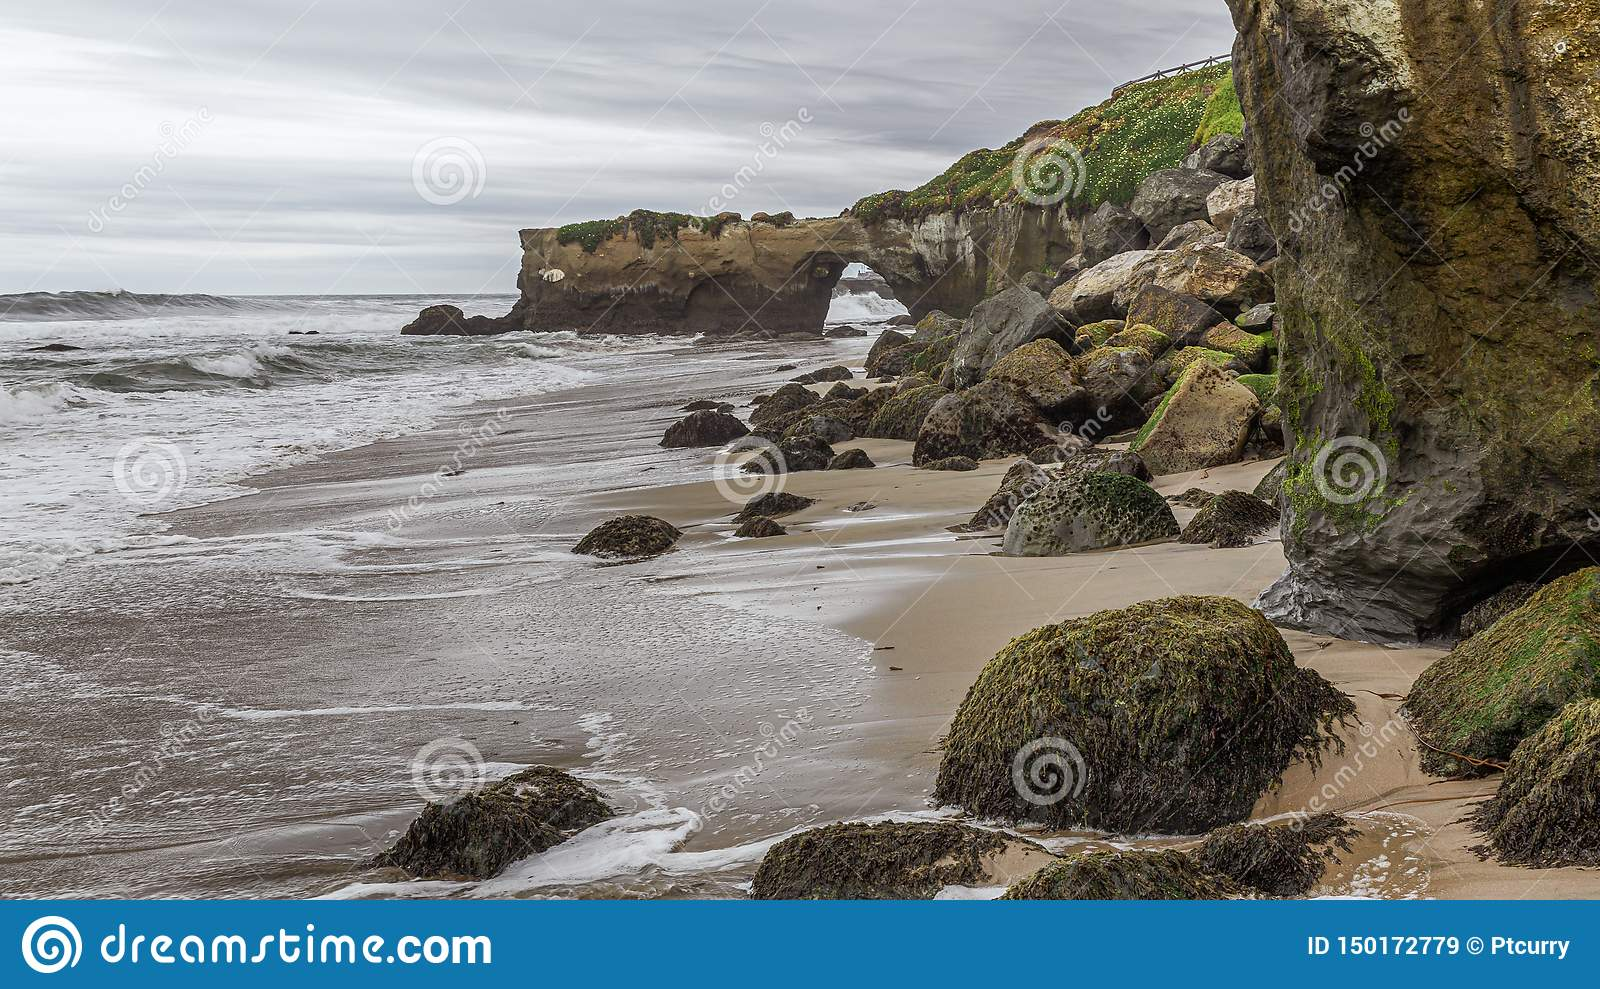 Sea Erosion, Rocks and Sand